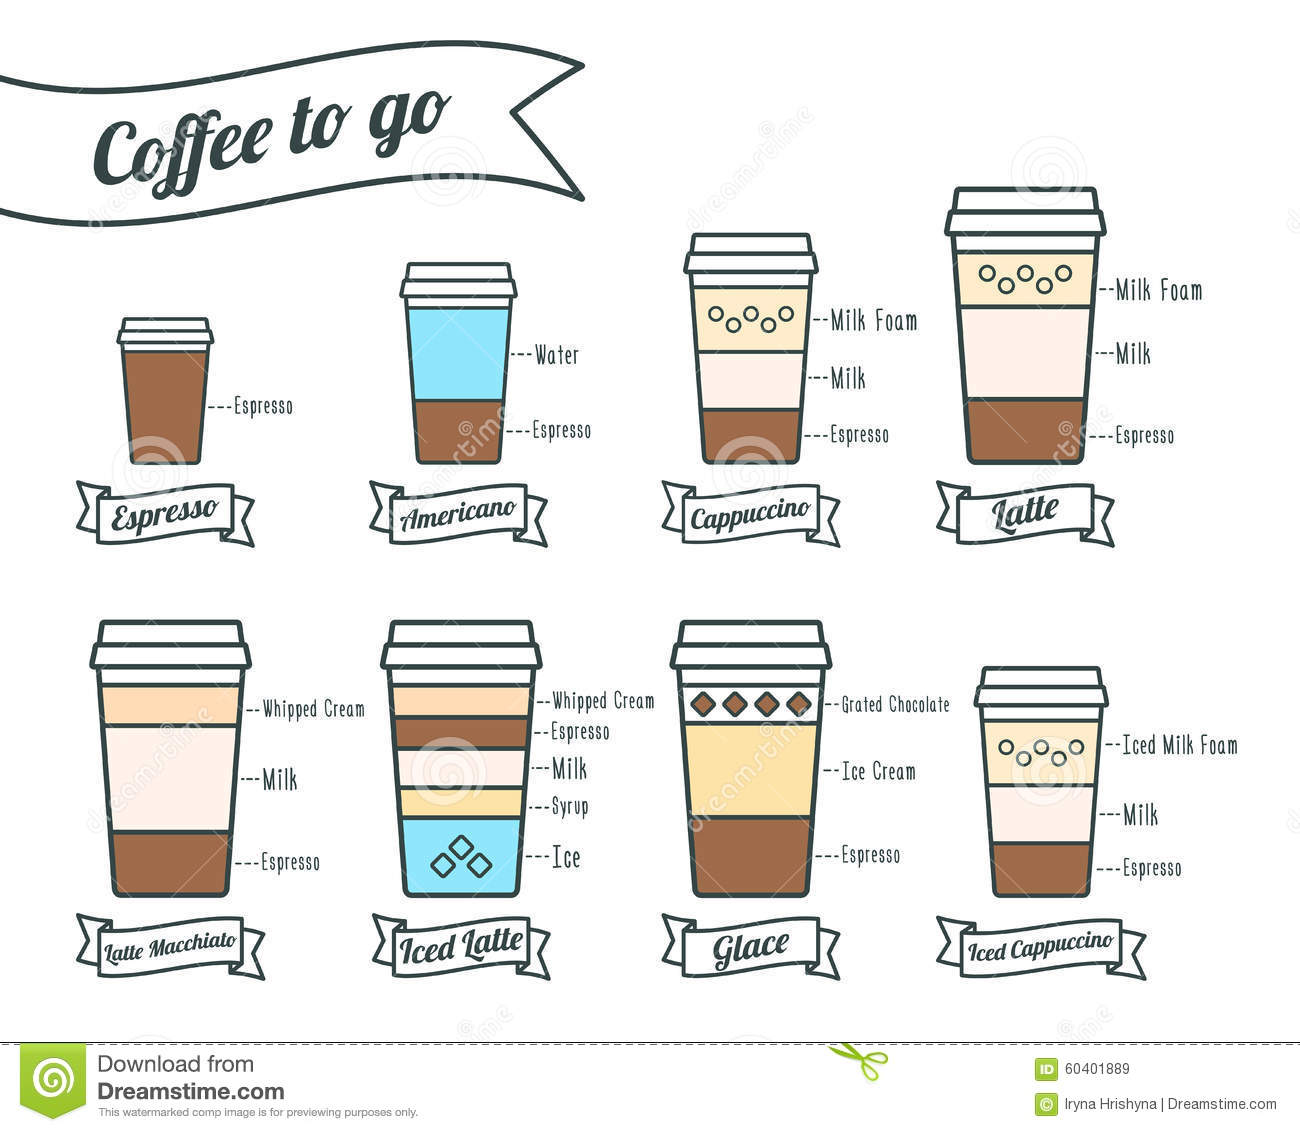 Americano Coffee To Go Coffee To Go Coffe Types And Recipe Line Icons Vector